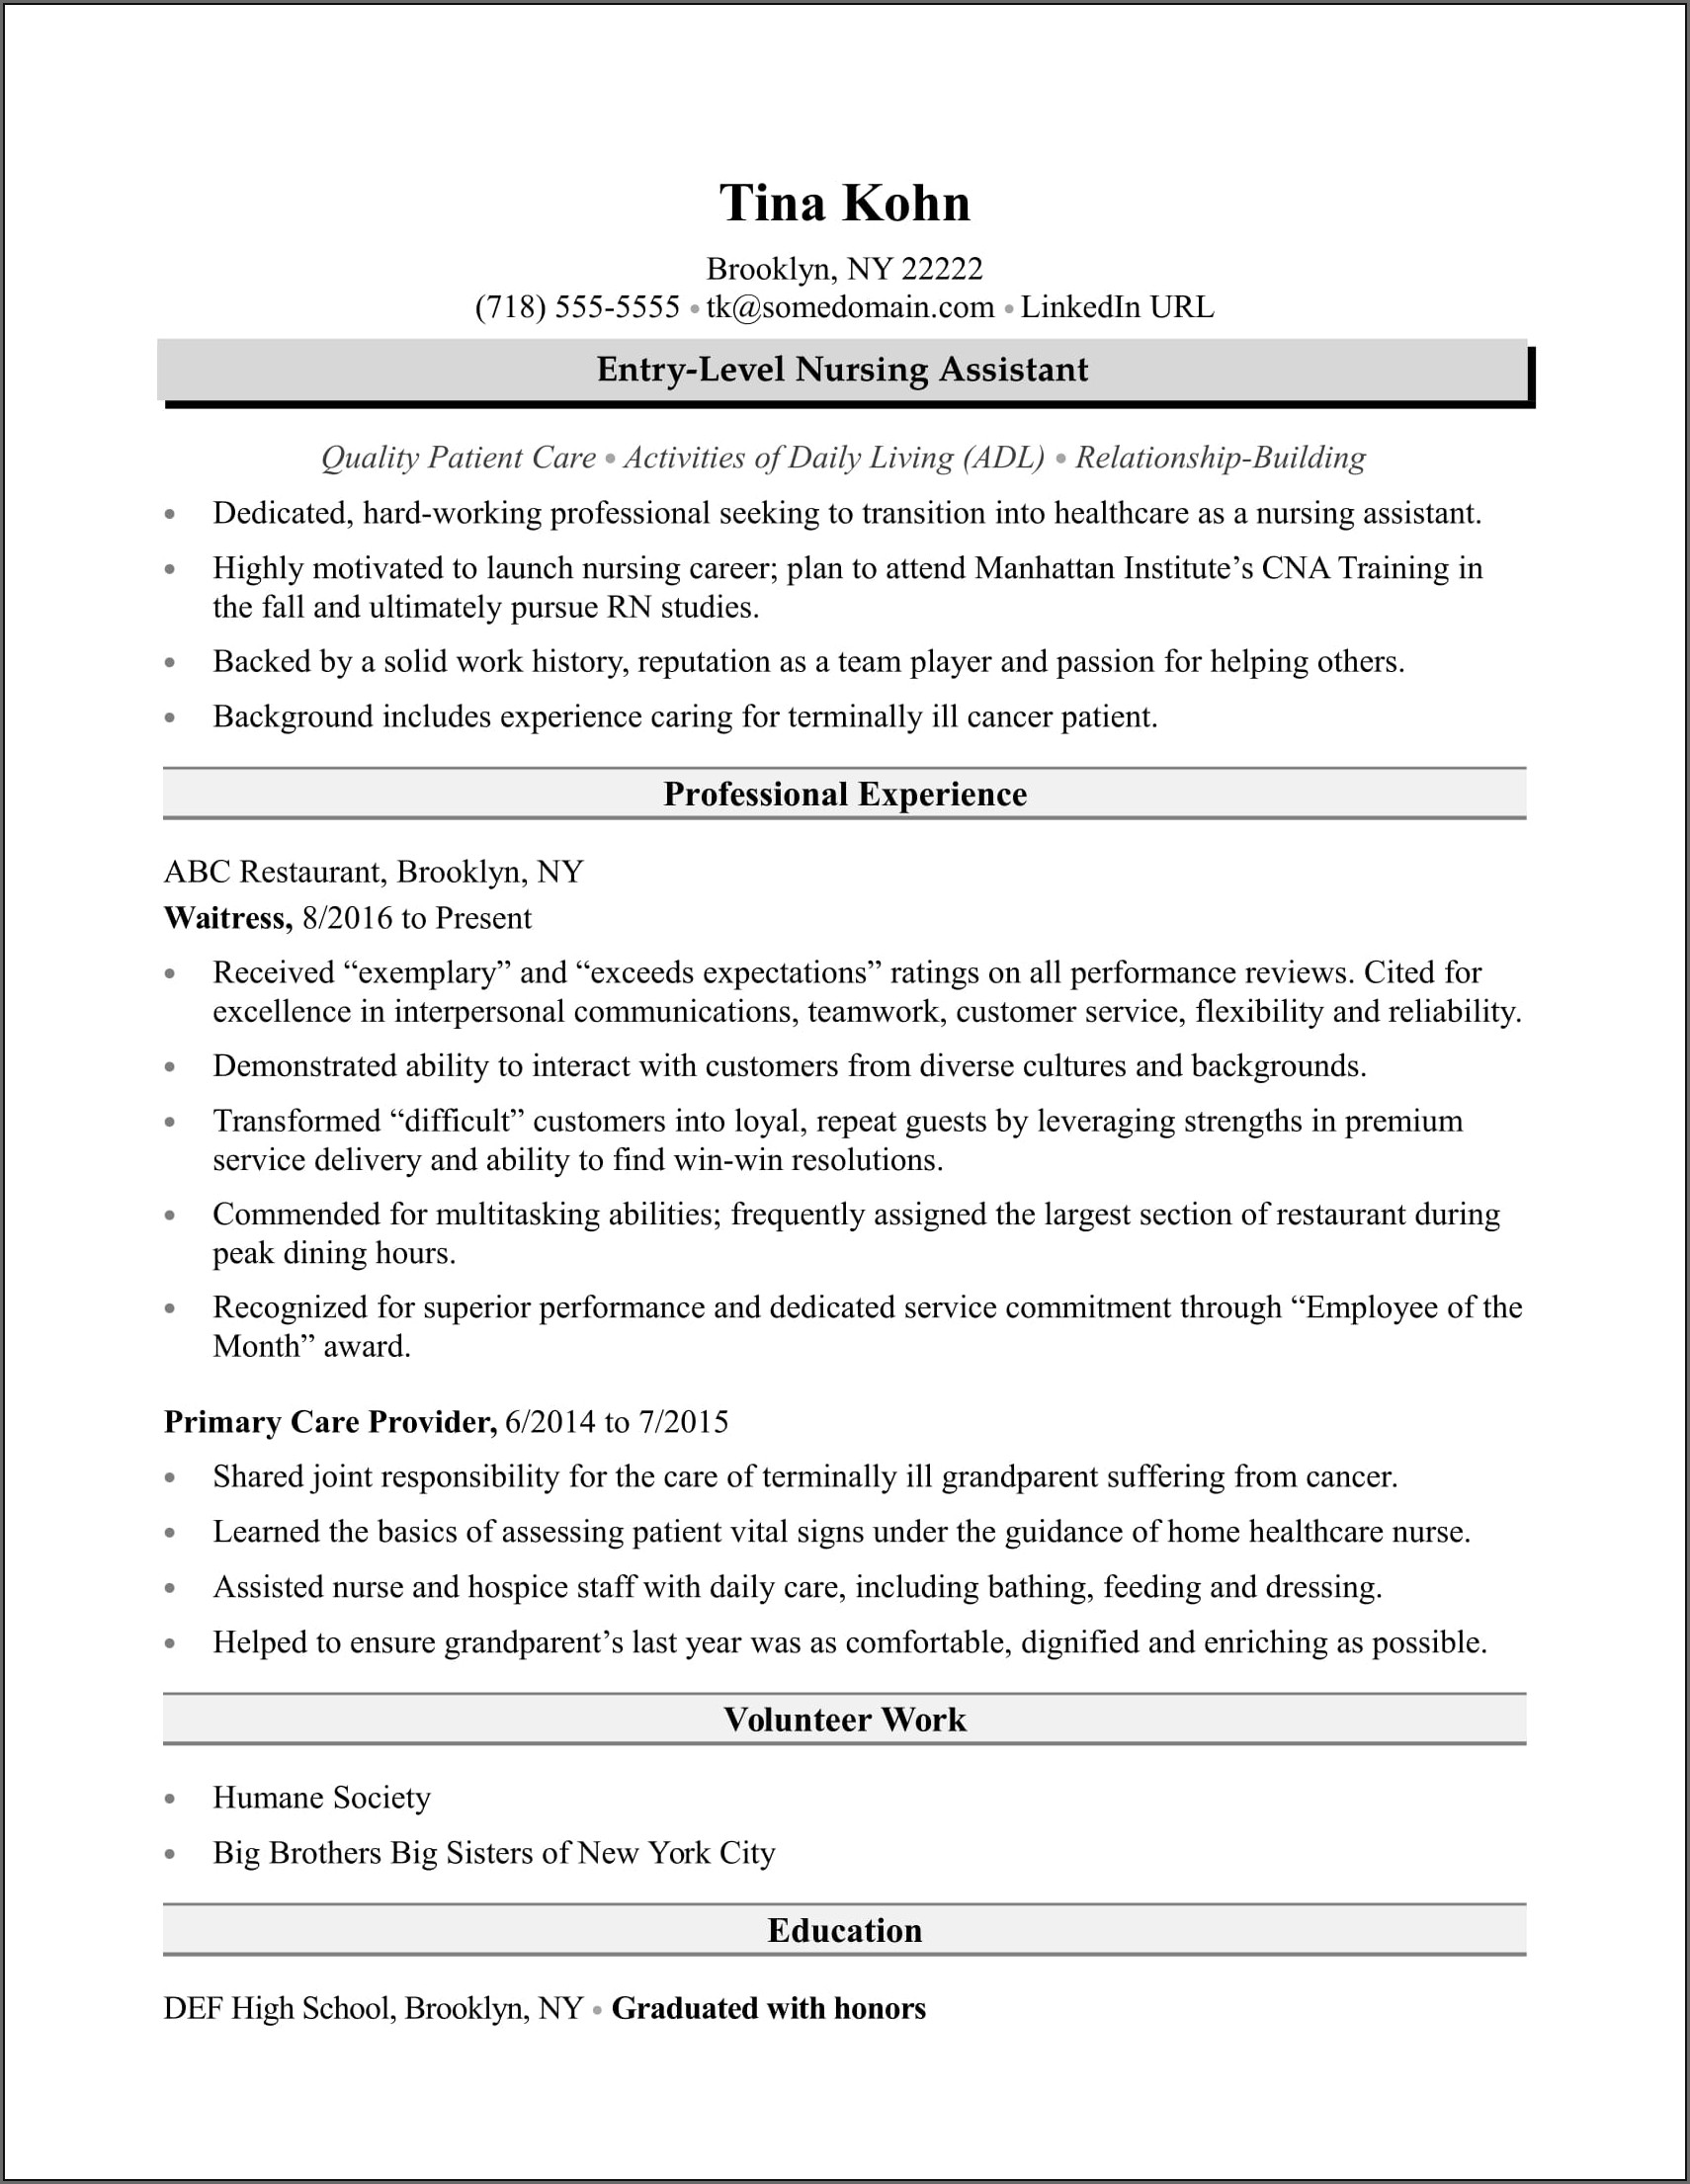 Sample Resume For Registered Nurse Australia